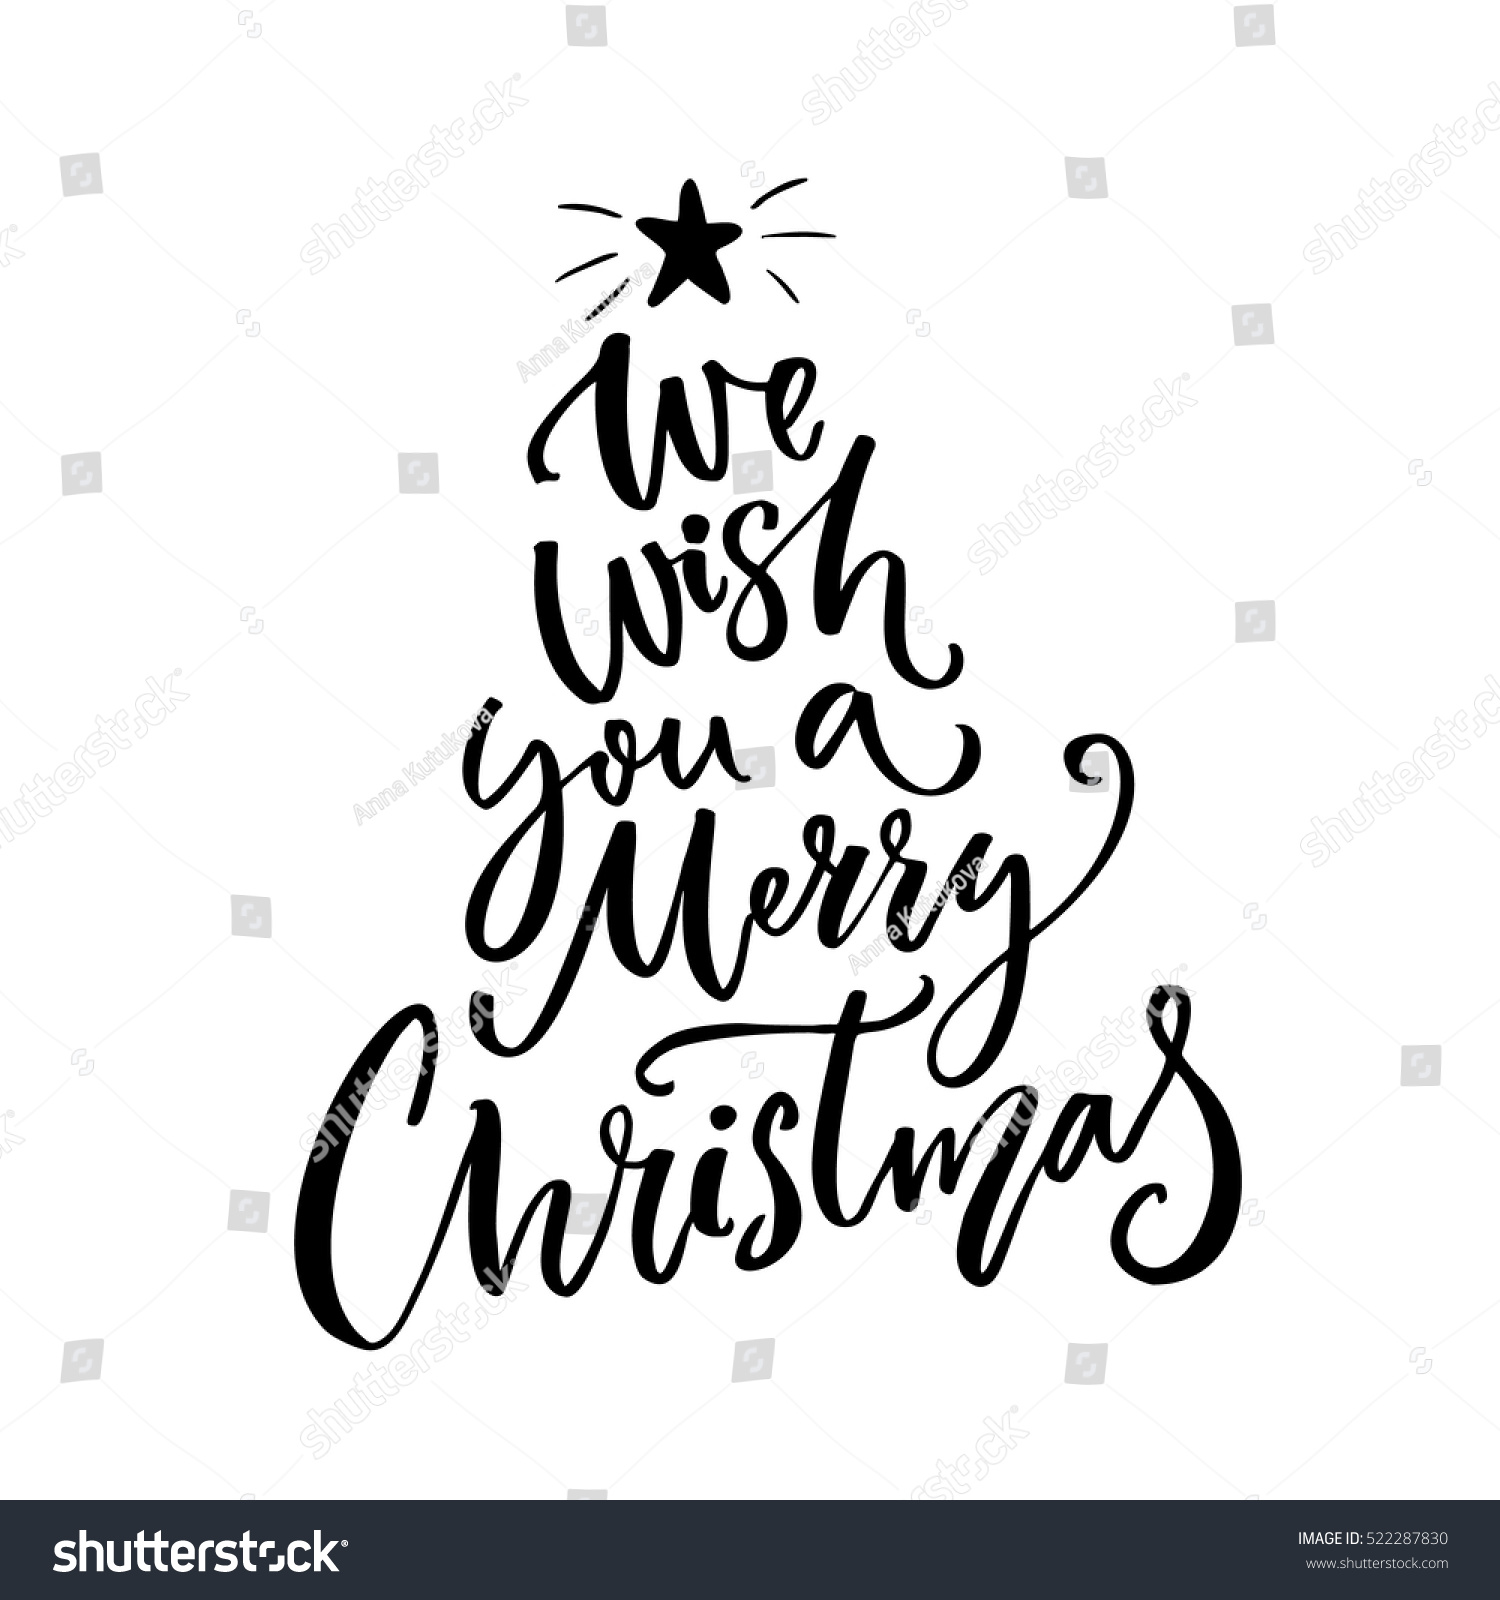 We Wish You Merry Christmas Typography Stock Vector (Royalty Free ...